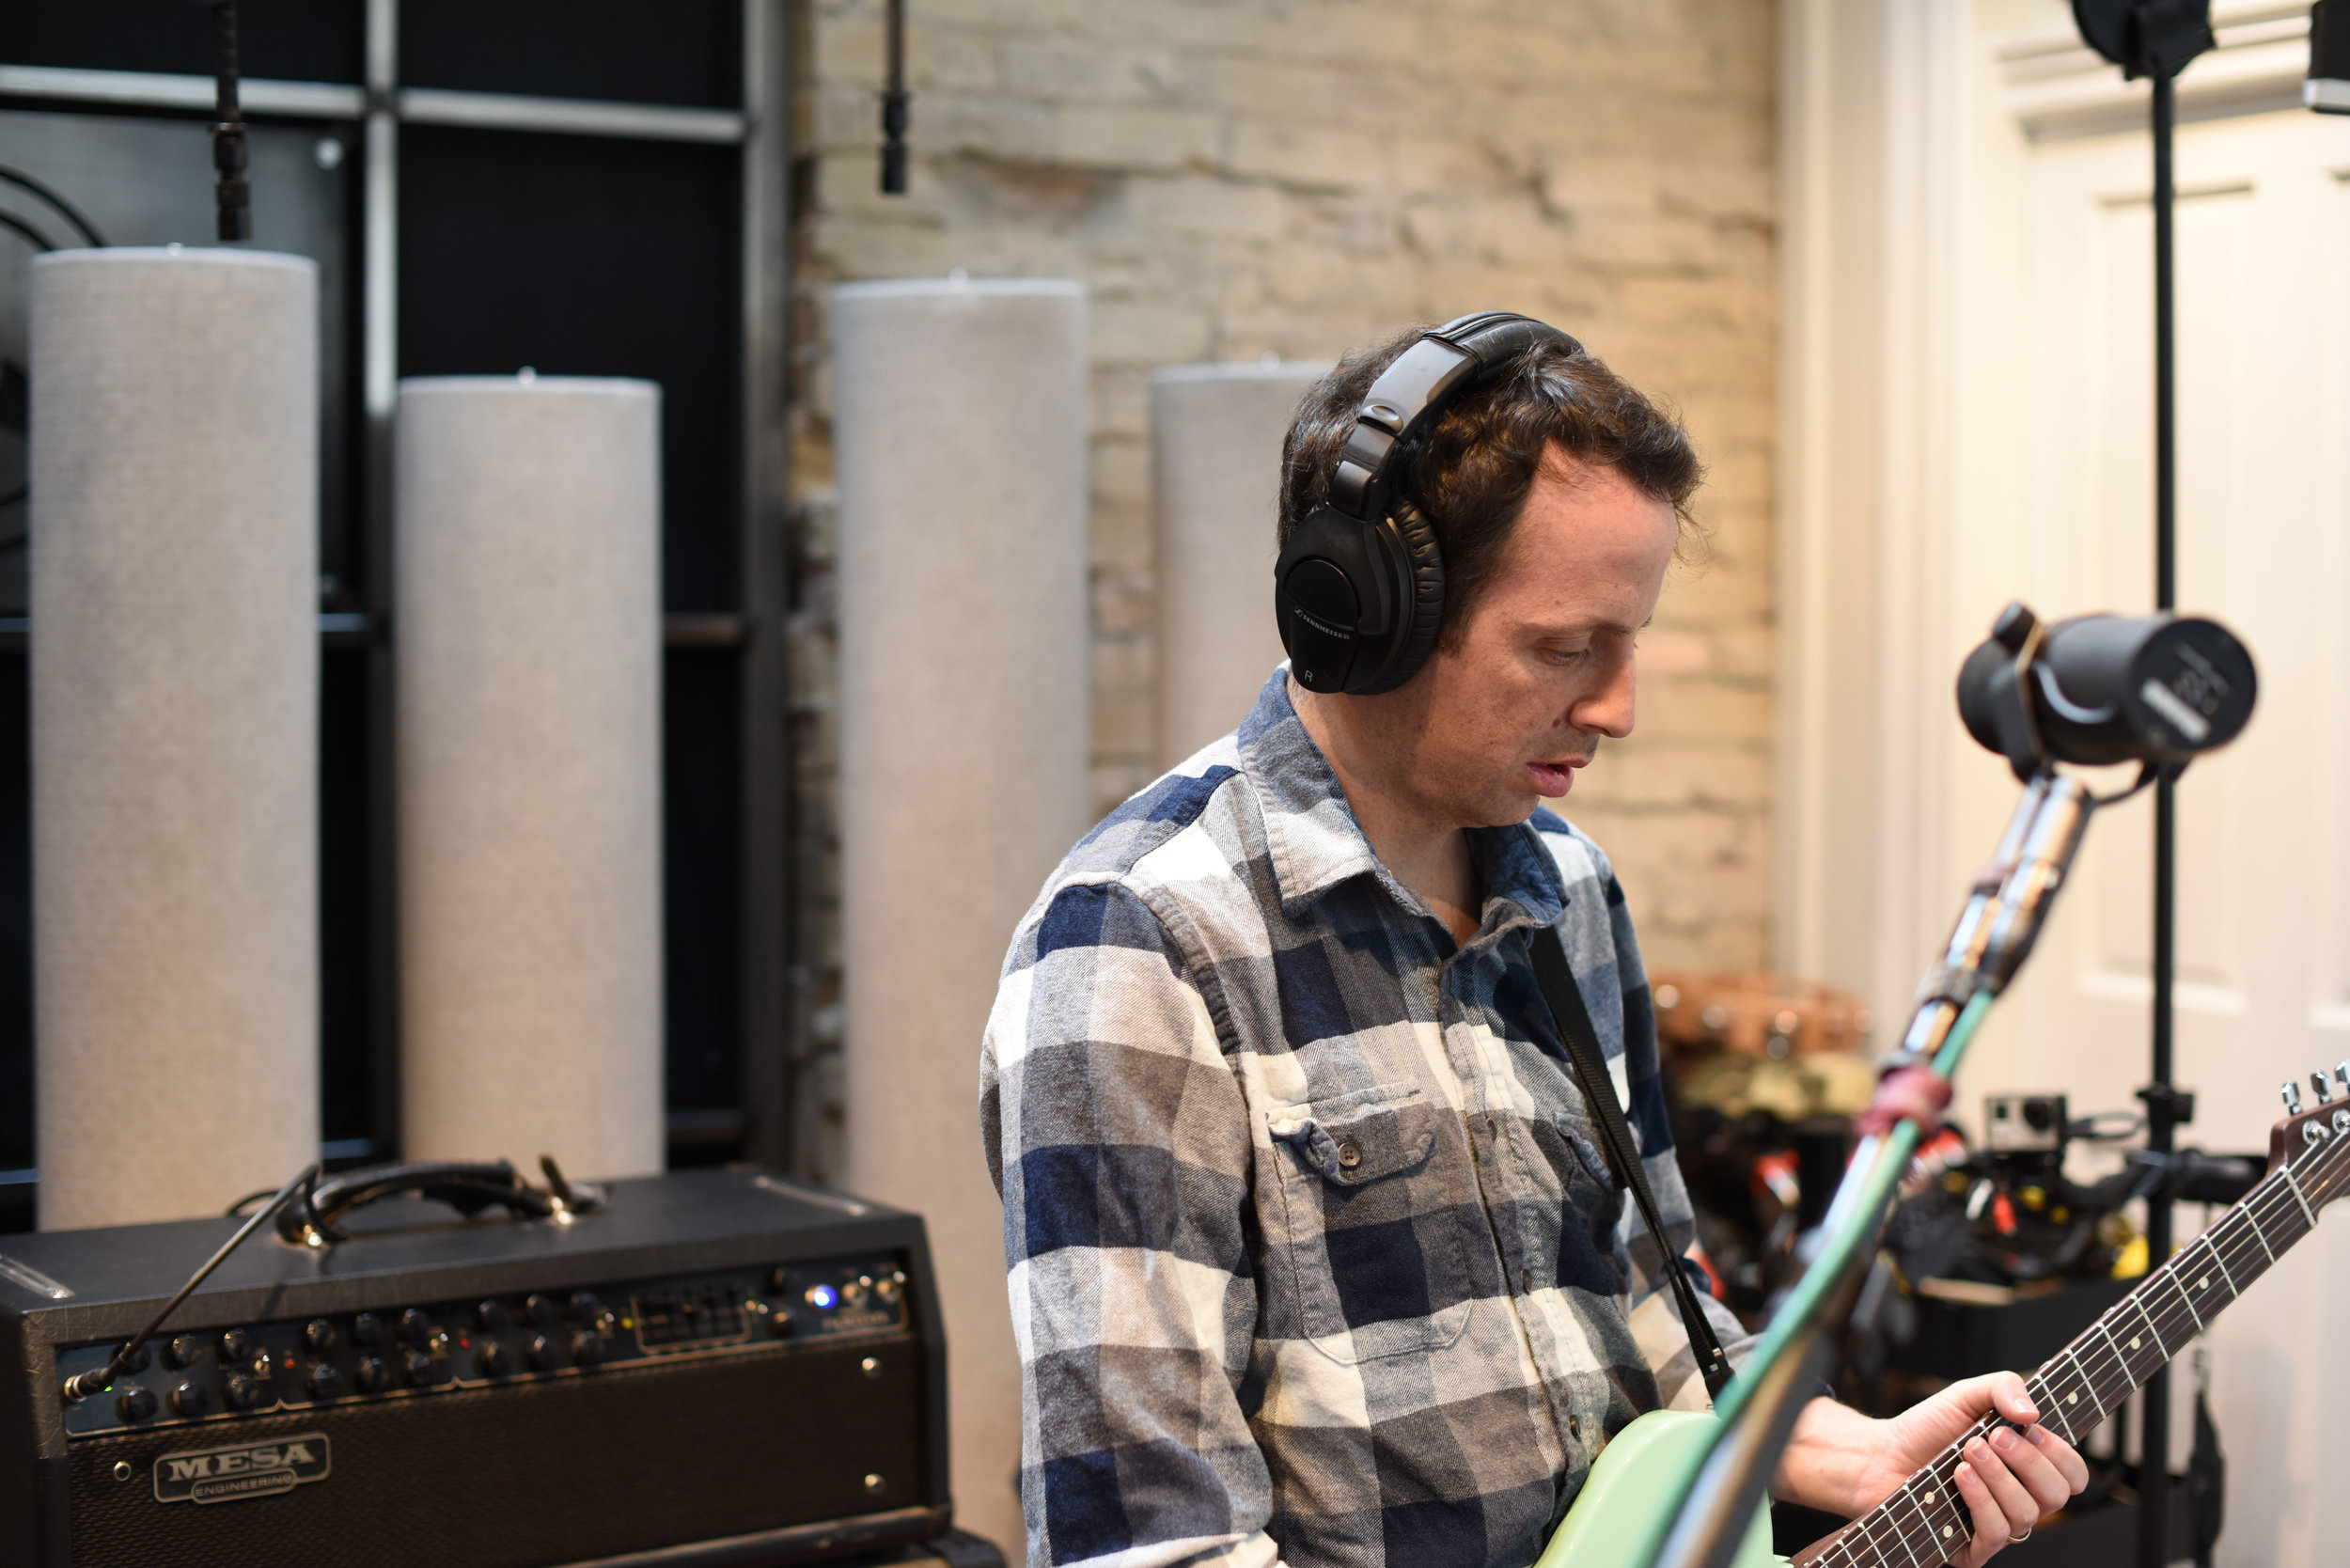 Bryce Taylor in the Studio laying down guitar tracks.